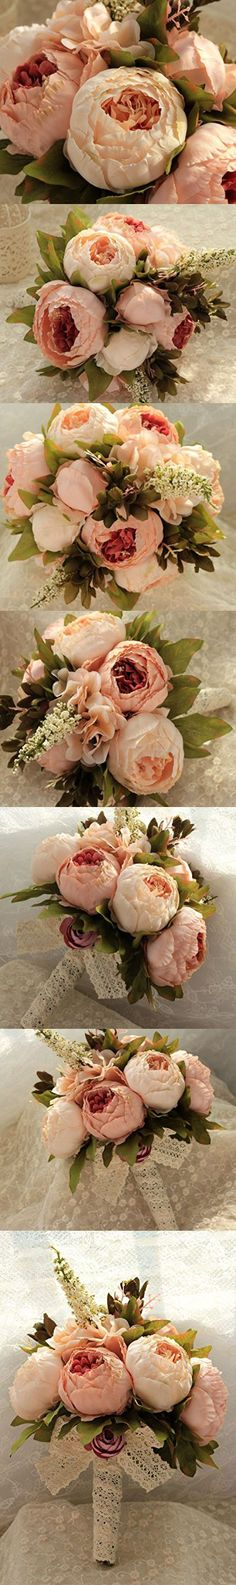 Bridess Artificial Peony Silk Flowers Bouquet Home Wedding Decoration (Champagne) Diy Wedding Bouquet, Diy Wedding Flowers, Floral Wedding, Wedding Ideas, Wedding Stuff, Silk Flower Bouquets, Bride Bouquets, Silk Flowers, Silk Peonies